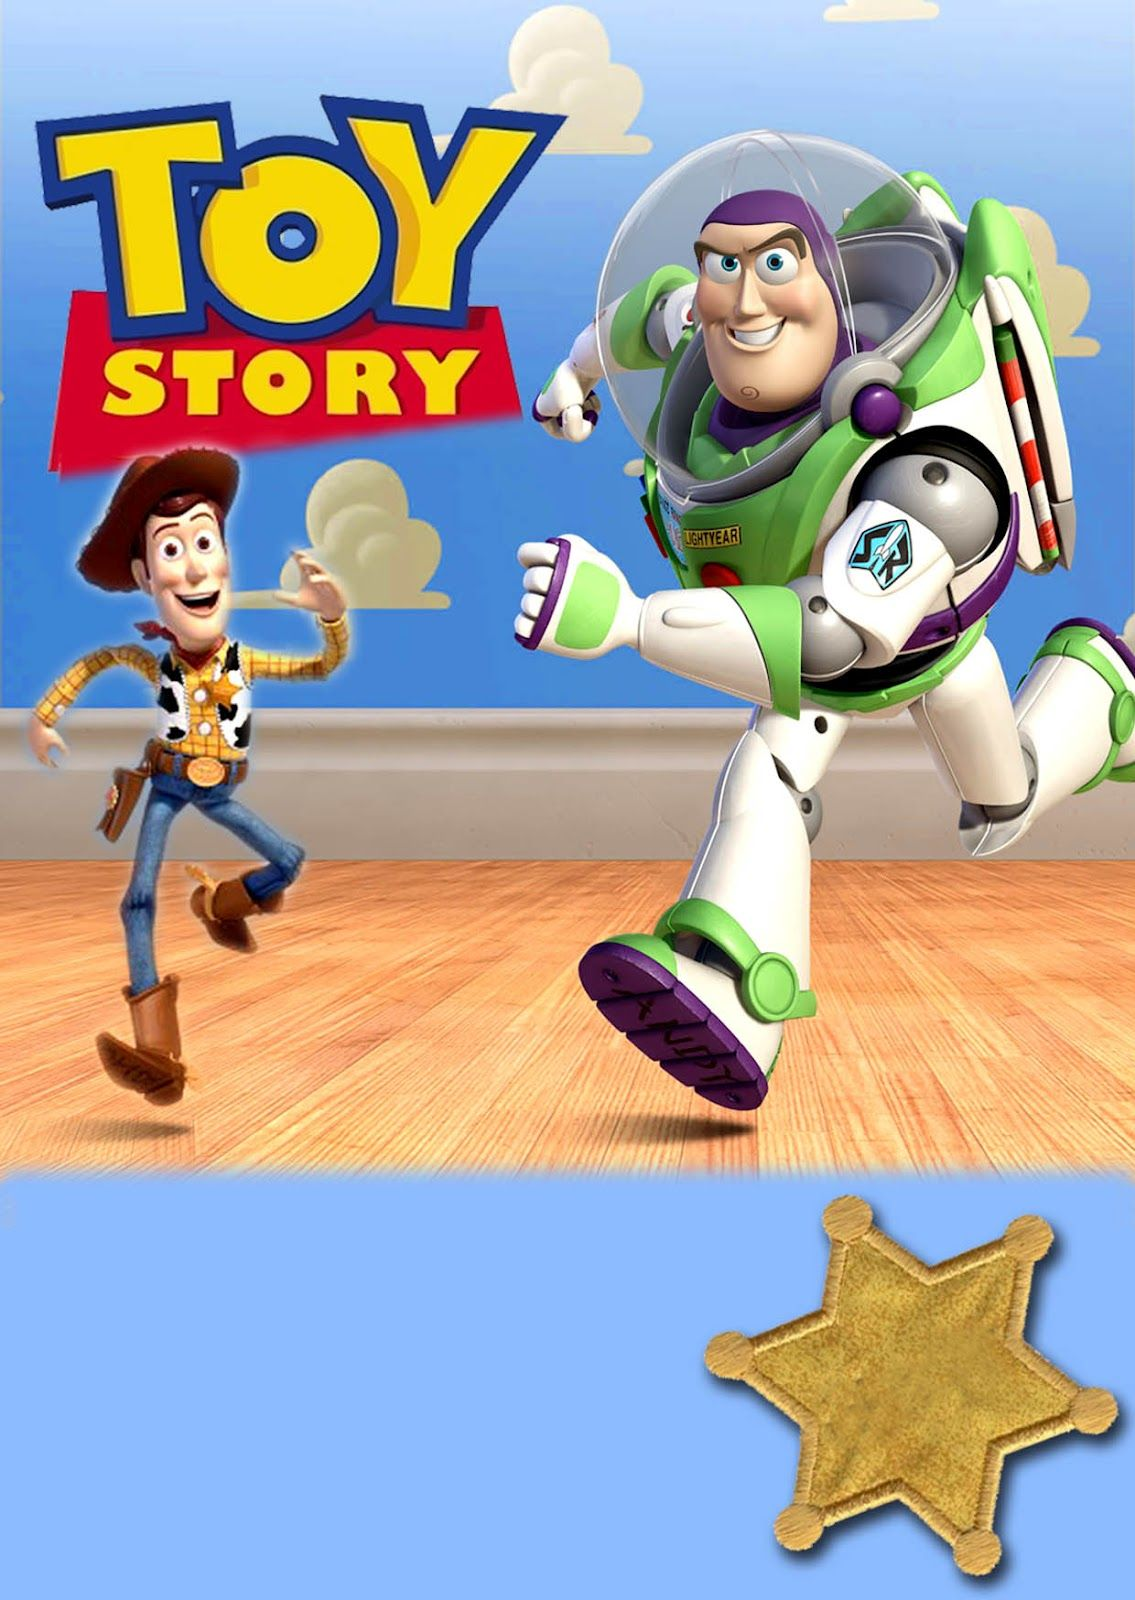 Free Kids Party Invitations Toy Story Party Invitation New Toy Story Party Ideas Toy